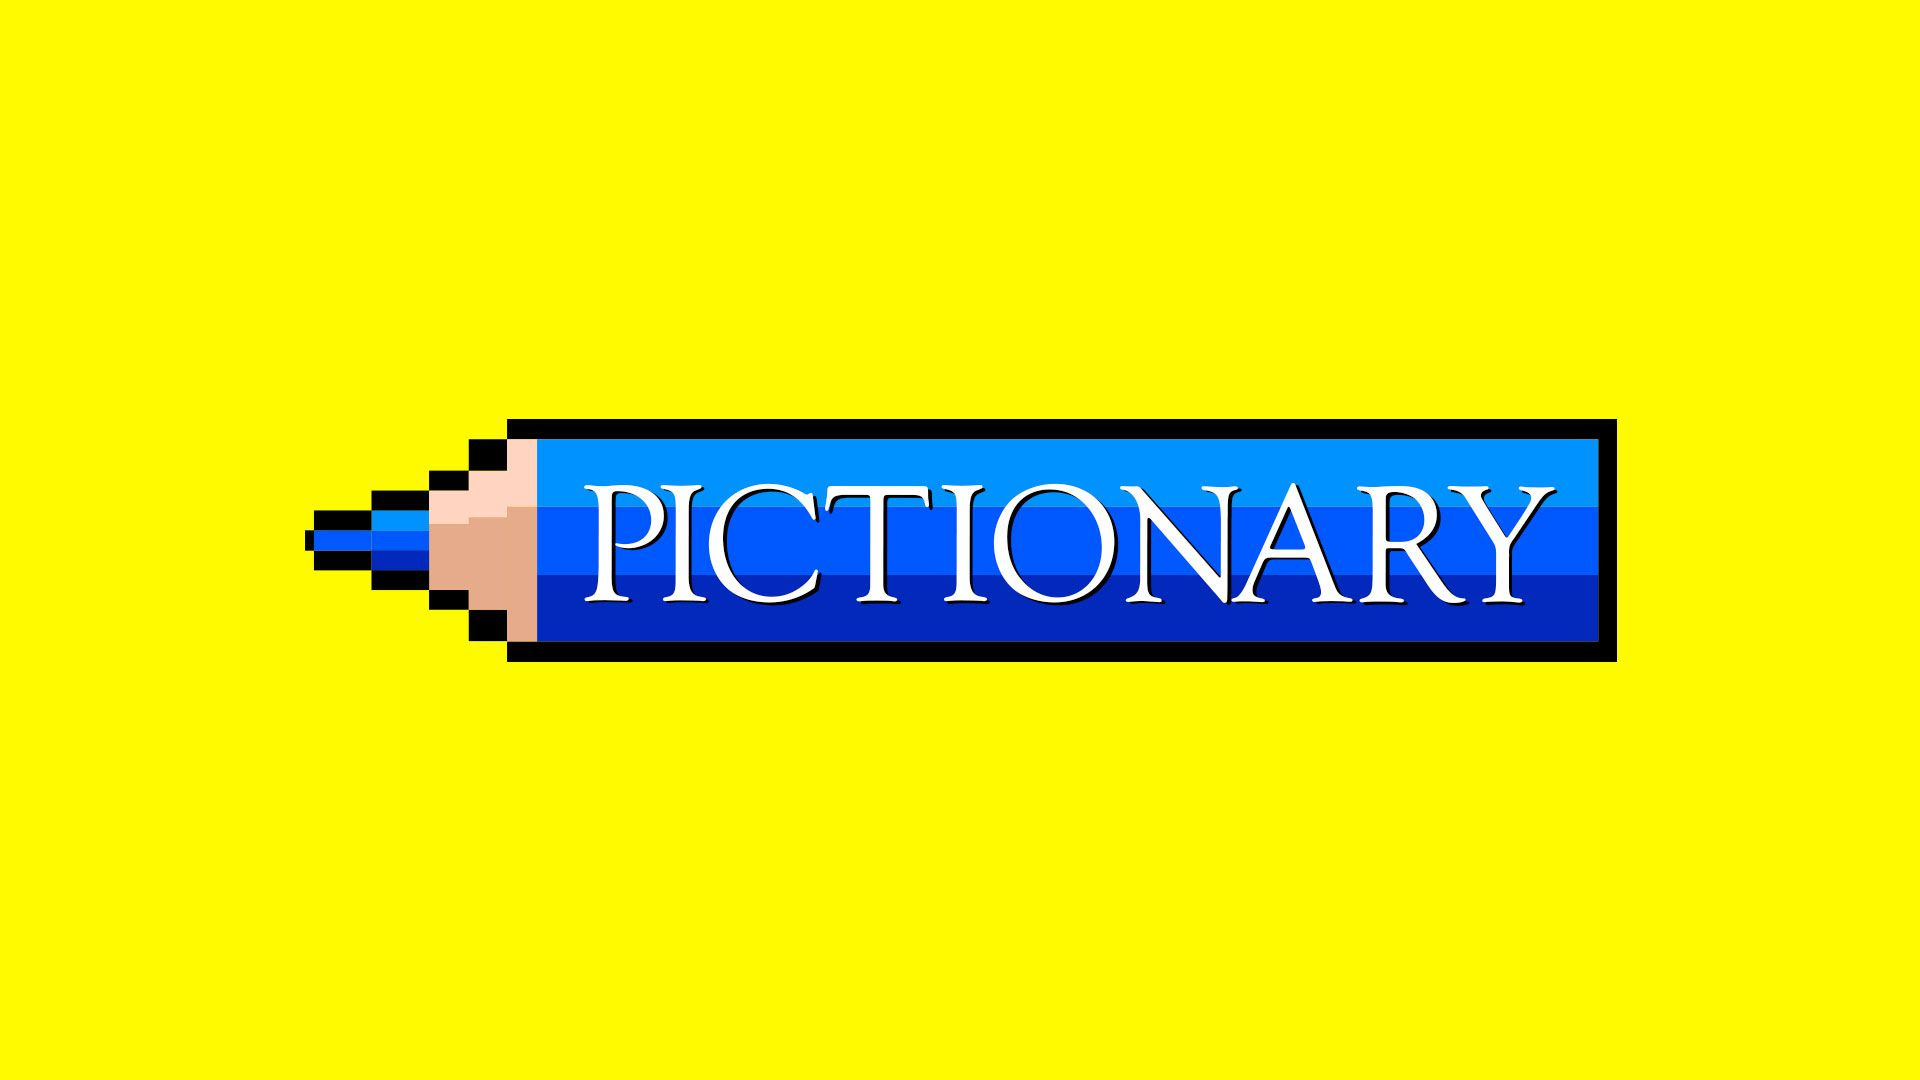 Illustration of the Pictionary logo on top of a pixel art style pencil.